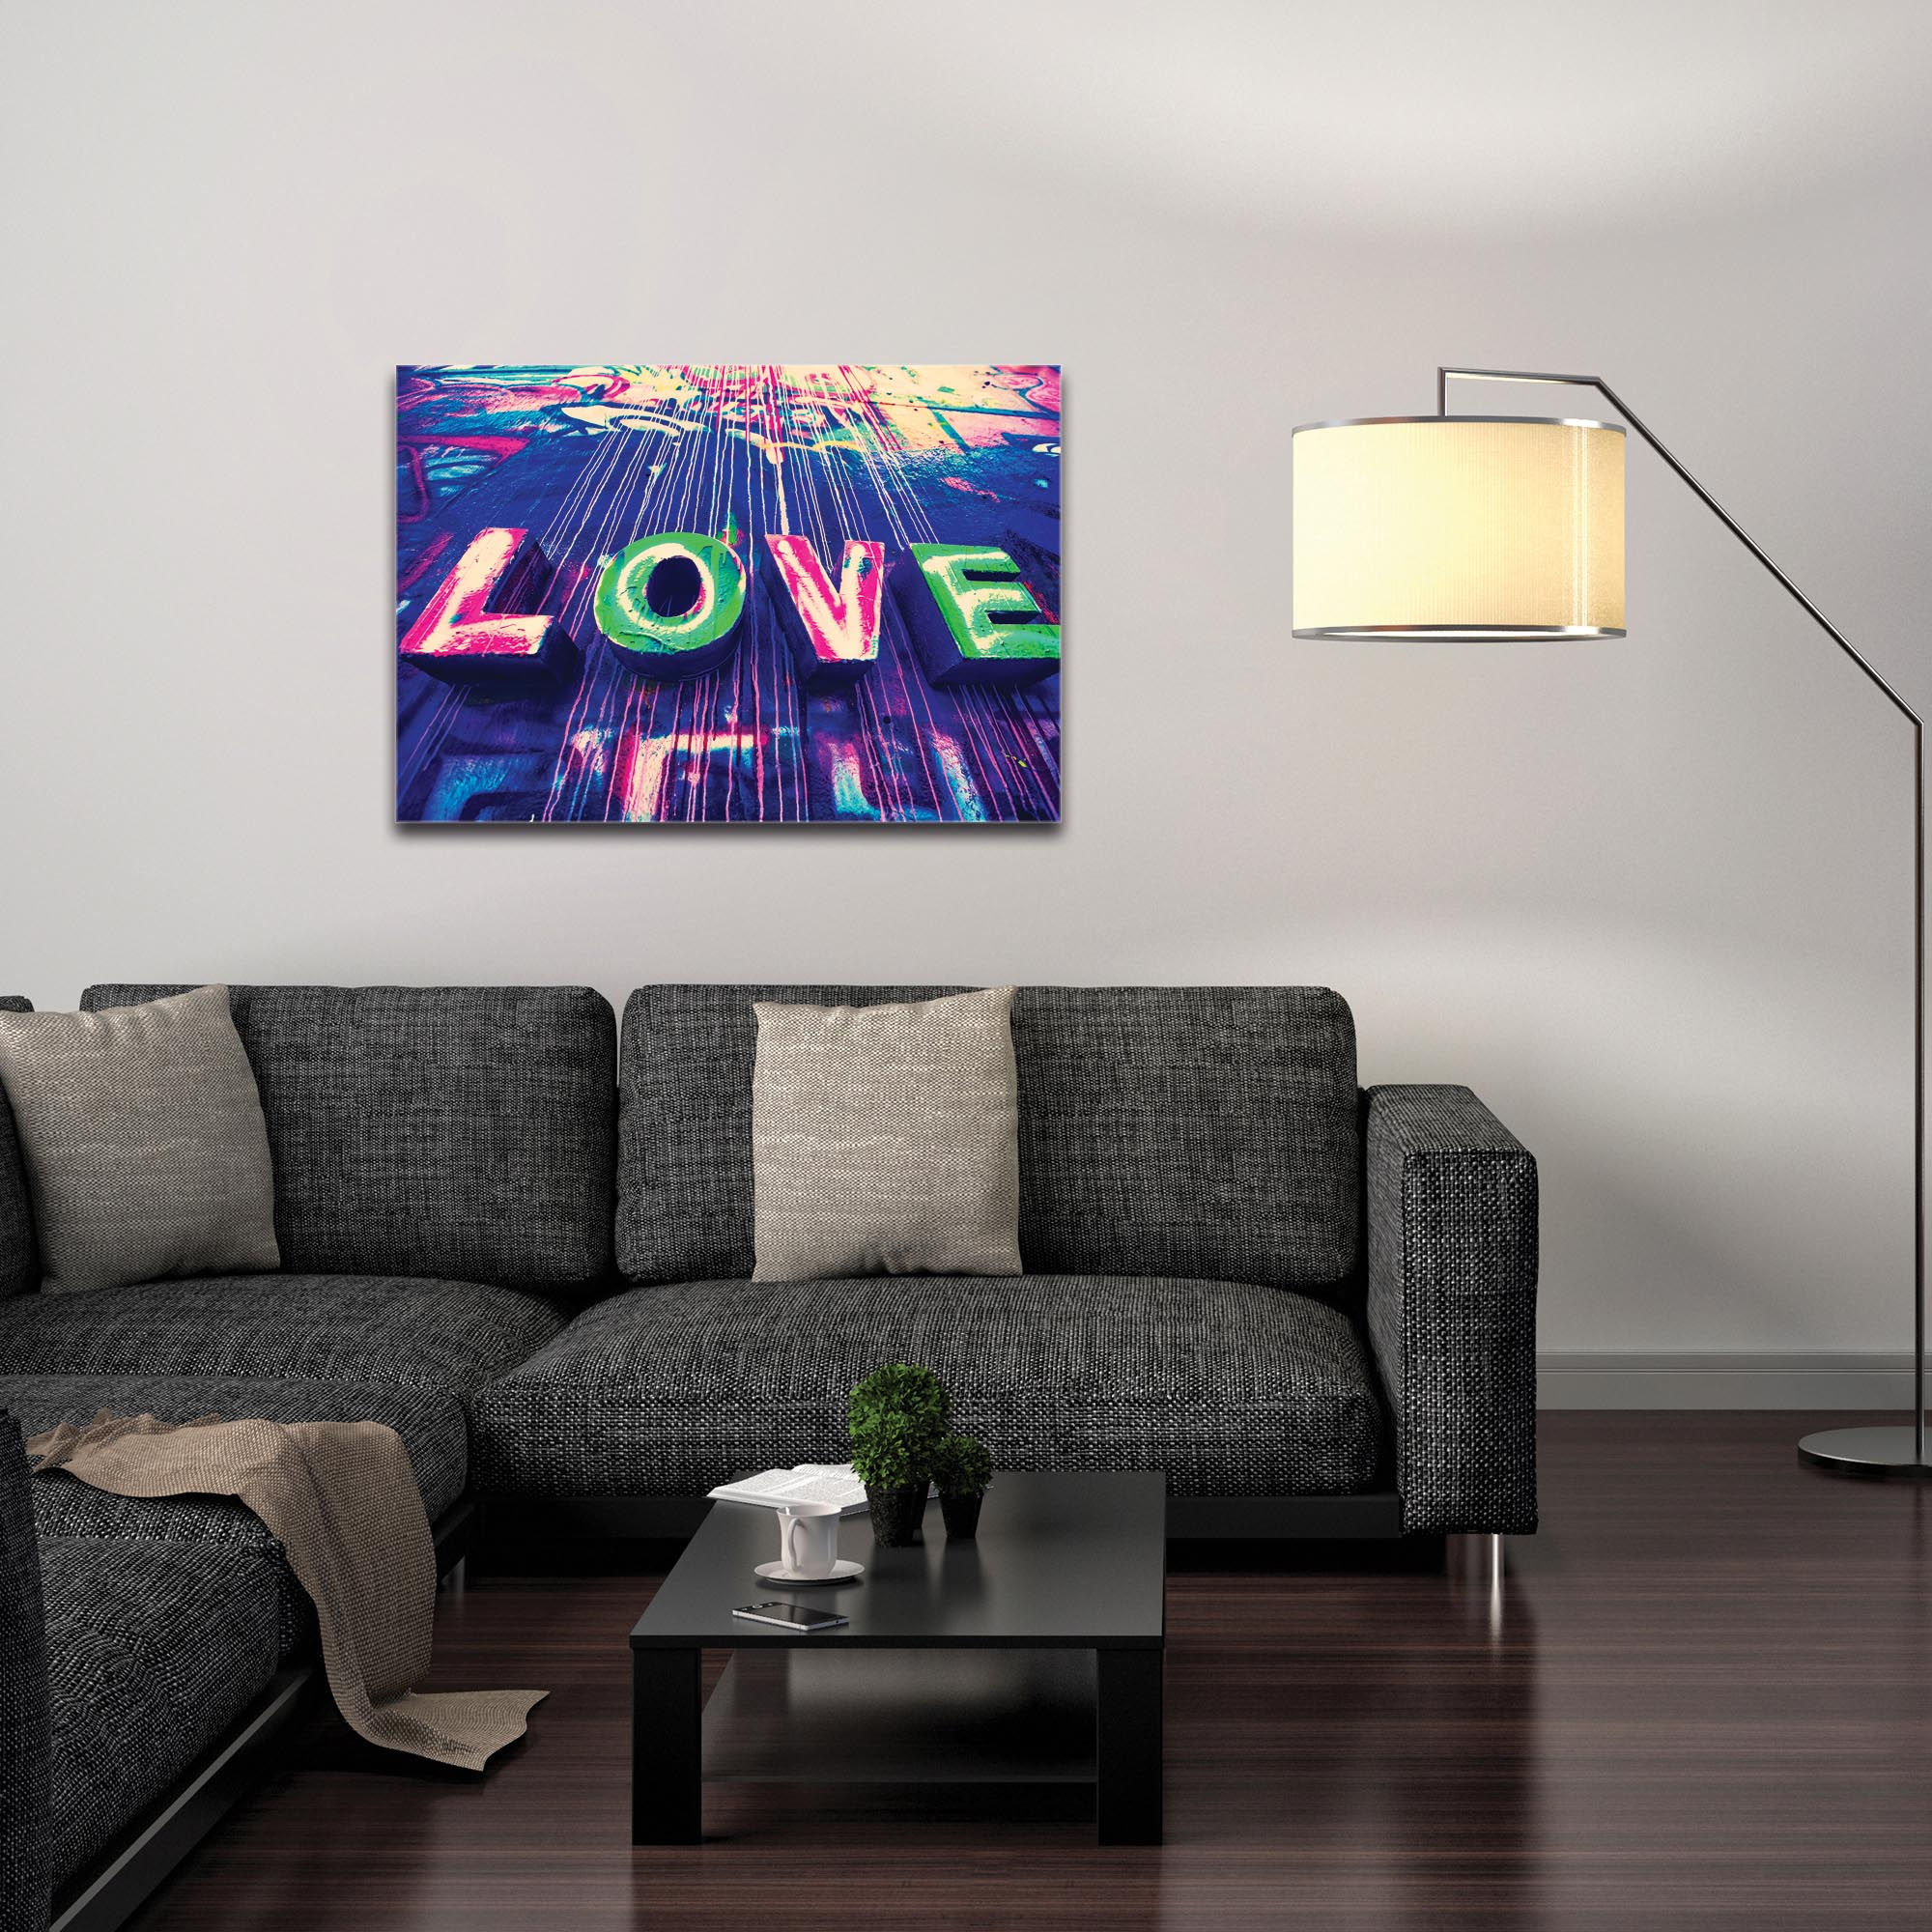 Eclectic Wall Art 'Urban Love' - New Orleans Decor on Metal or Plexiglass - Image 3